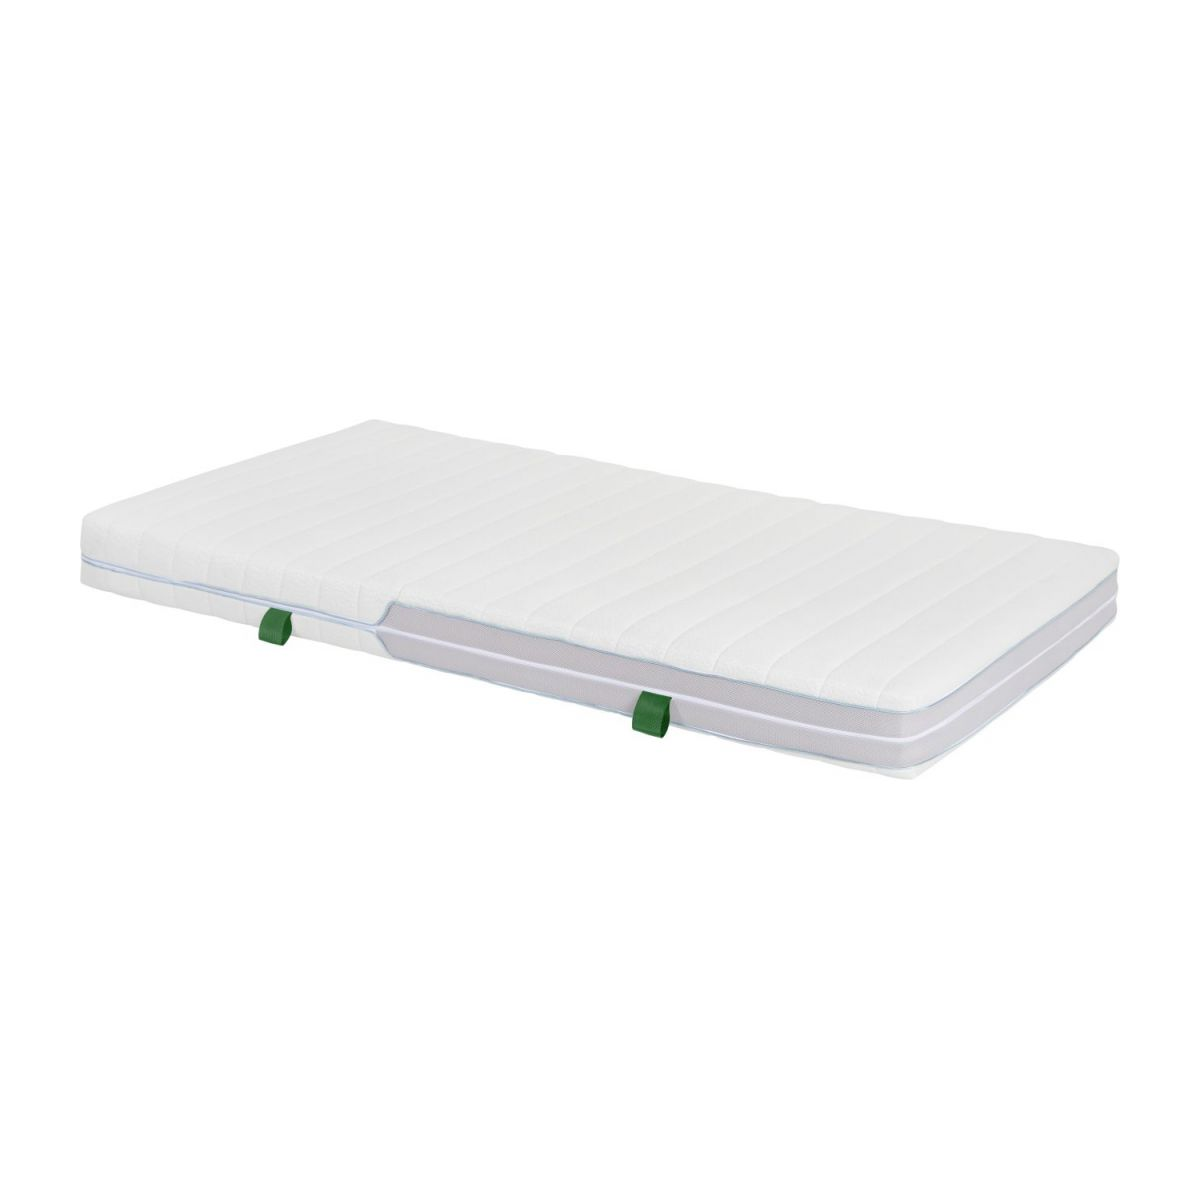 Matelas en latex, width 18 cm, 80x200cm - medium support n°1